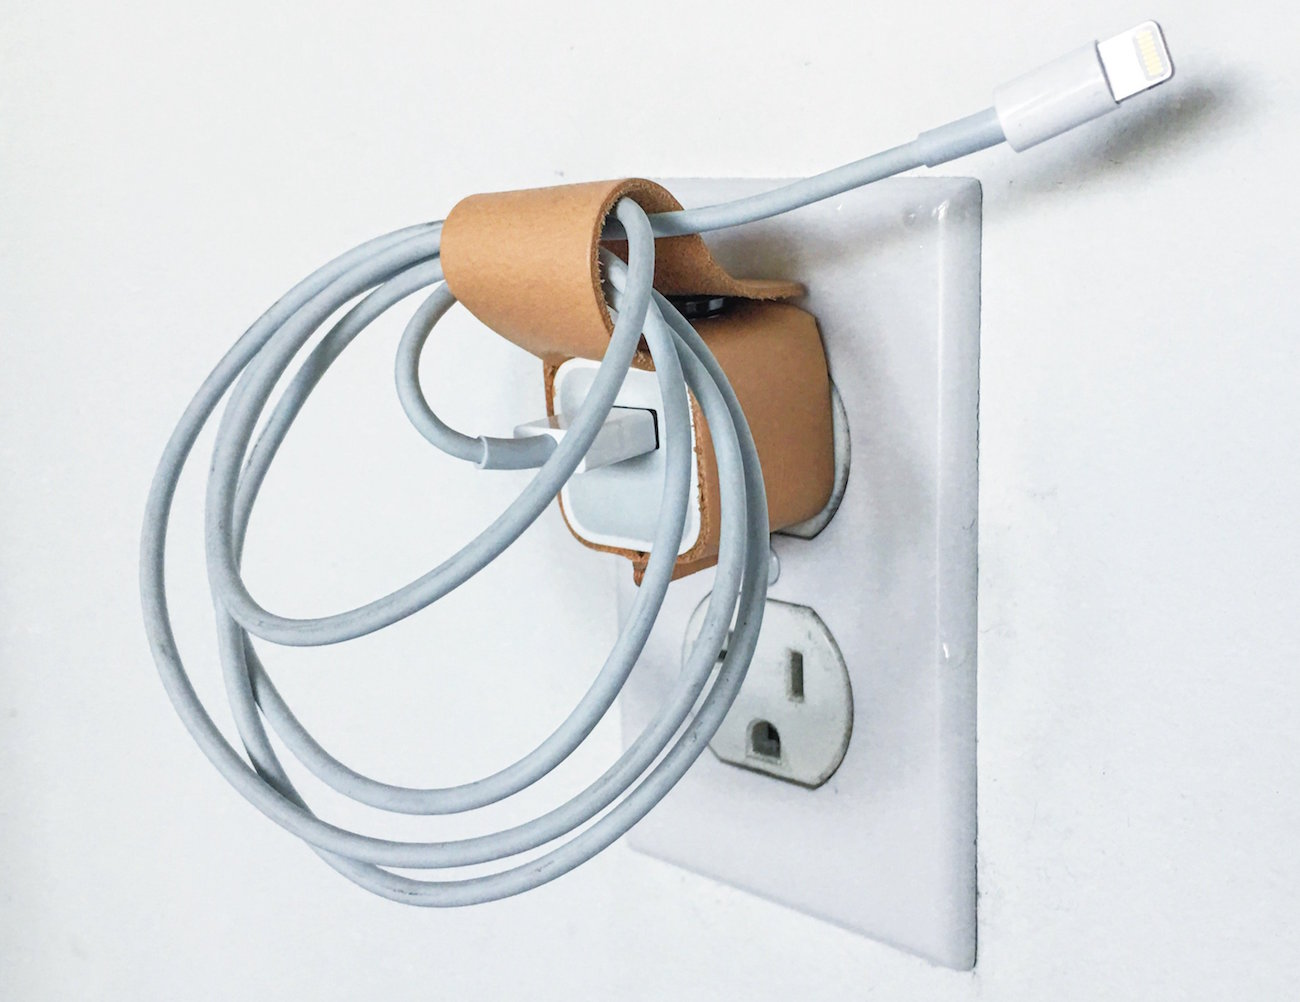 Lupito Charger and Cable Organizer 3-Pack by This Is Ground